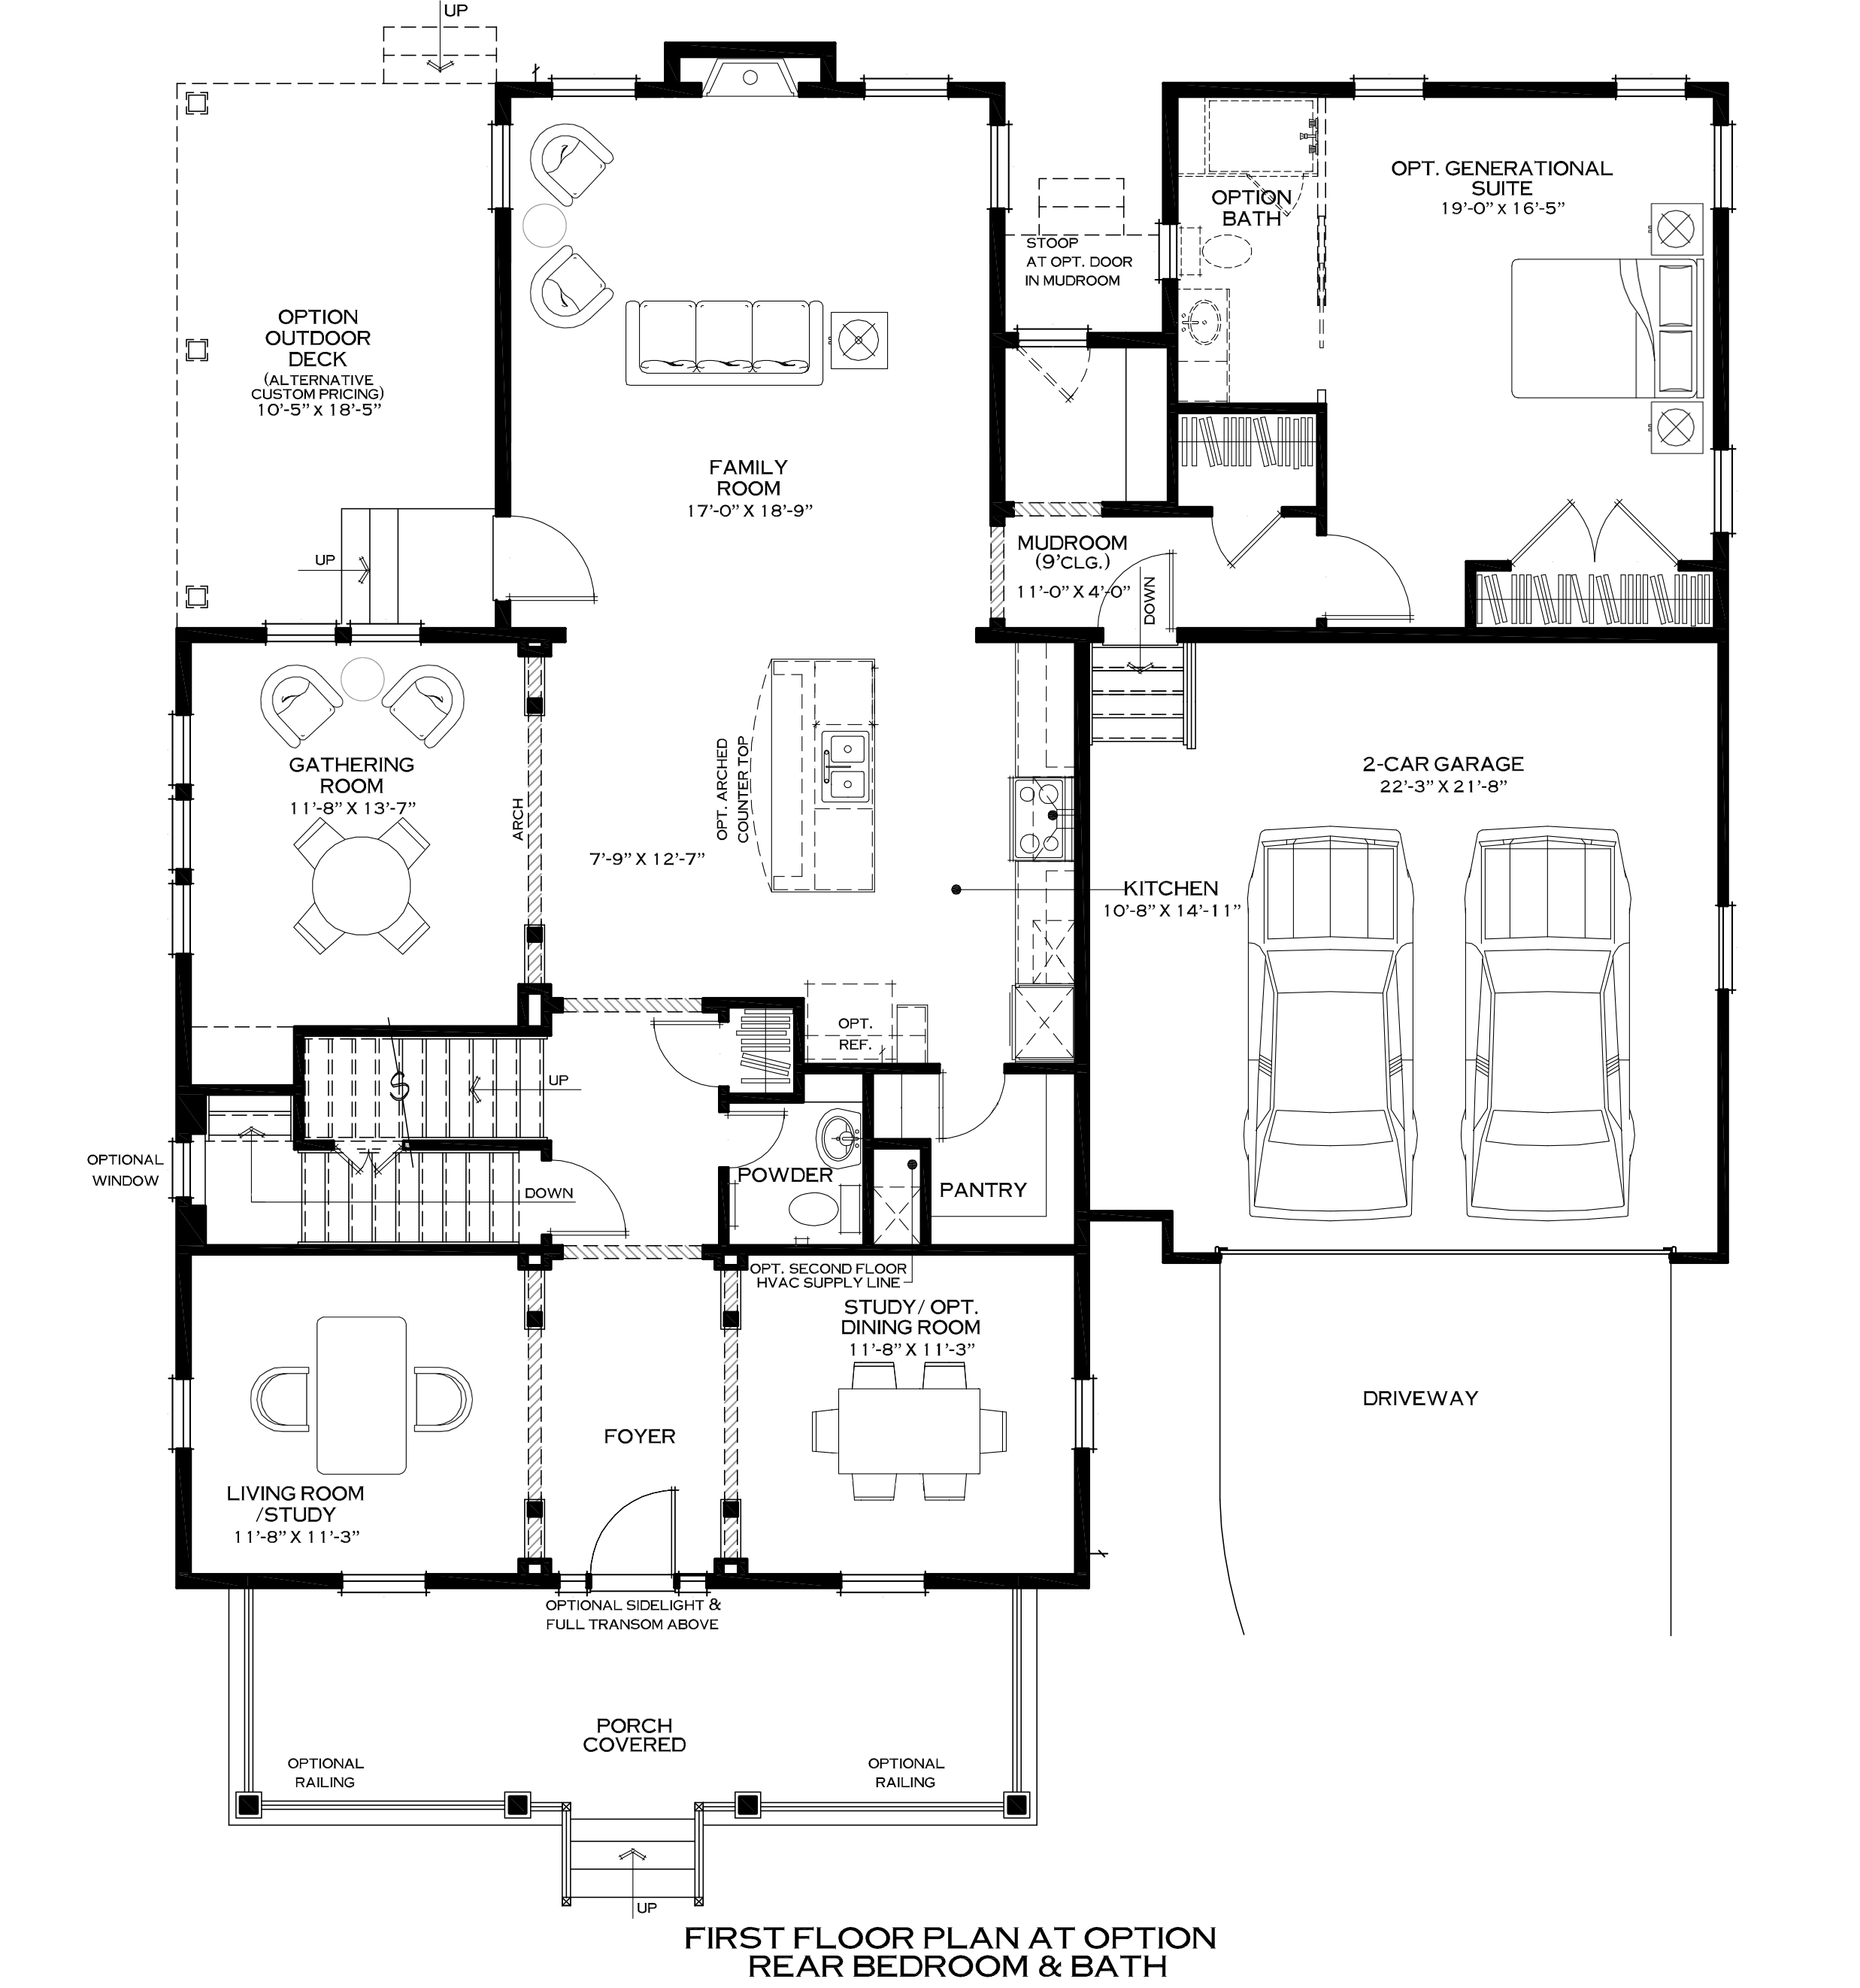 2-Chestertown S-D First Flr Opt Rear Bedroom _ Bath.png